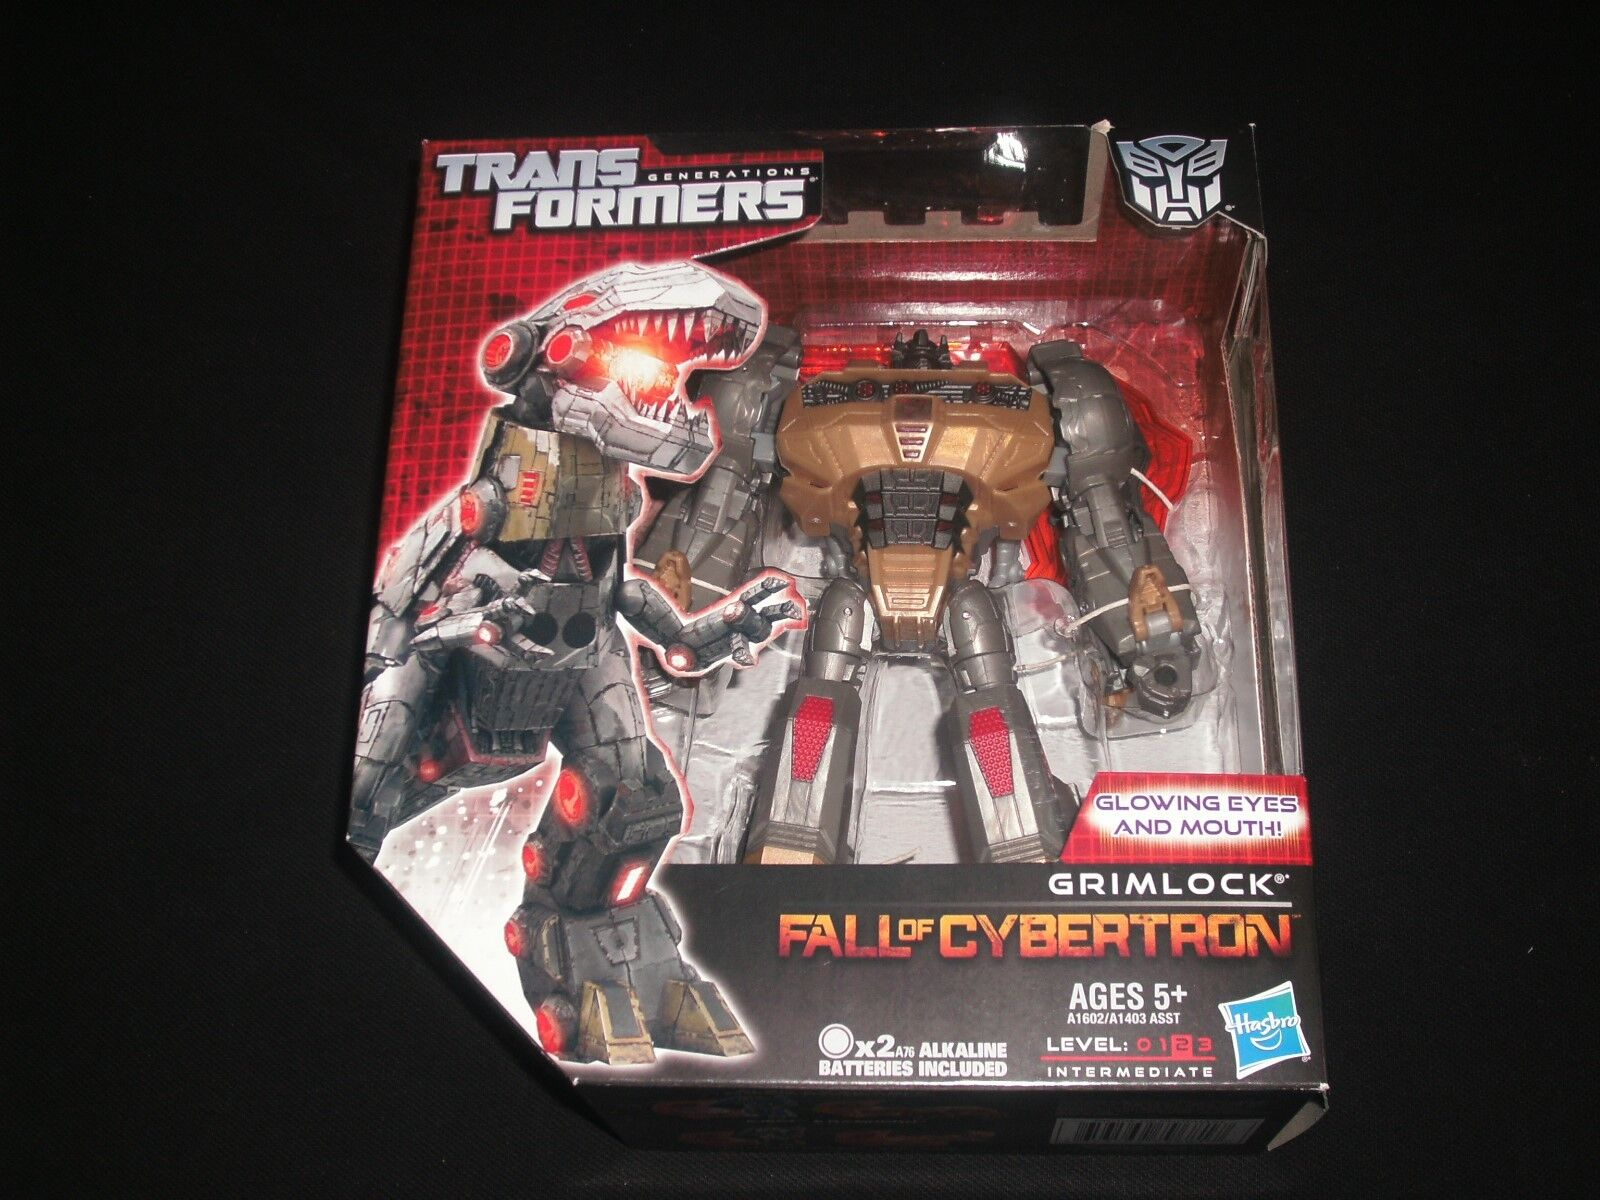 Transformers Voyager Class Action Figures  Select Your Figure(s)